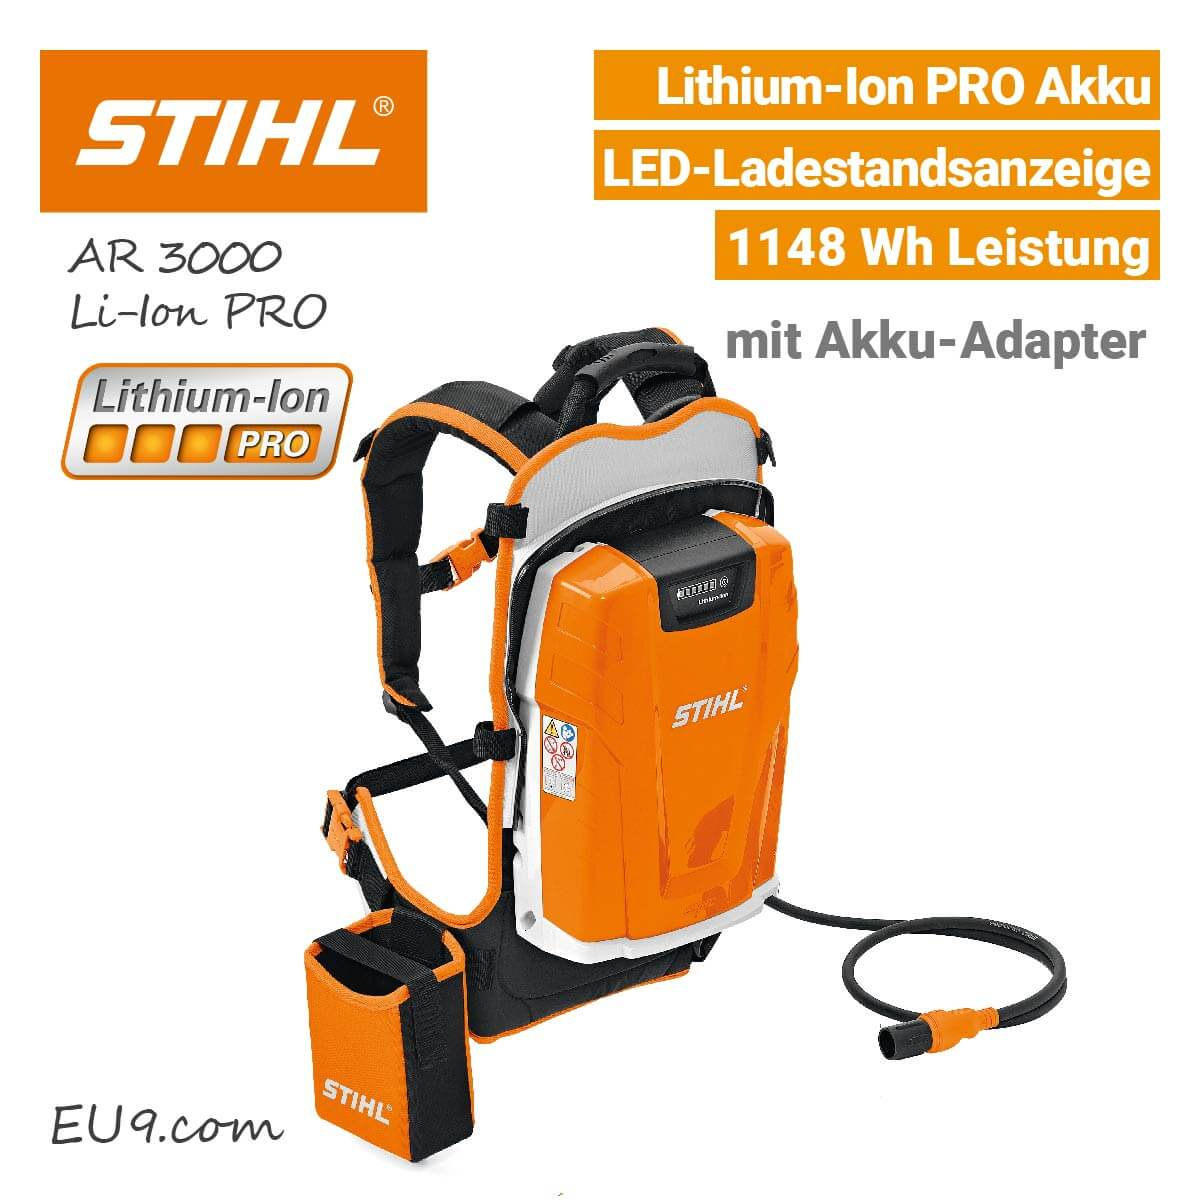 stihl ar 3000 lithium ion pro akku r ckengetragen bei eu9 kaufen. Black Bedroom Furniture Sets. Home Design Ideas